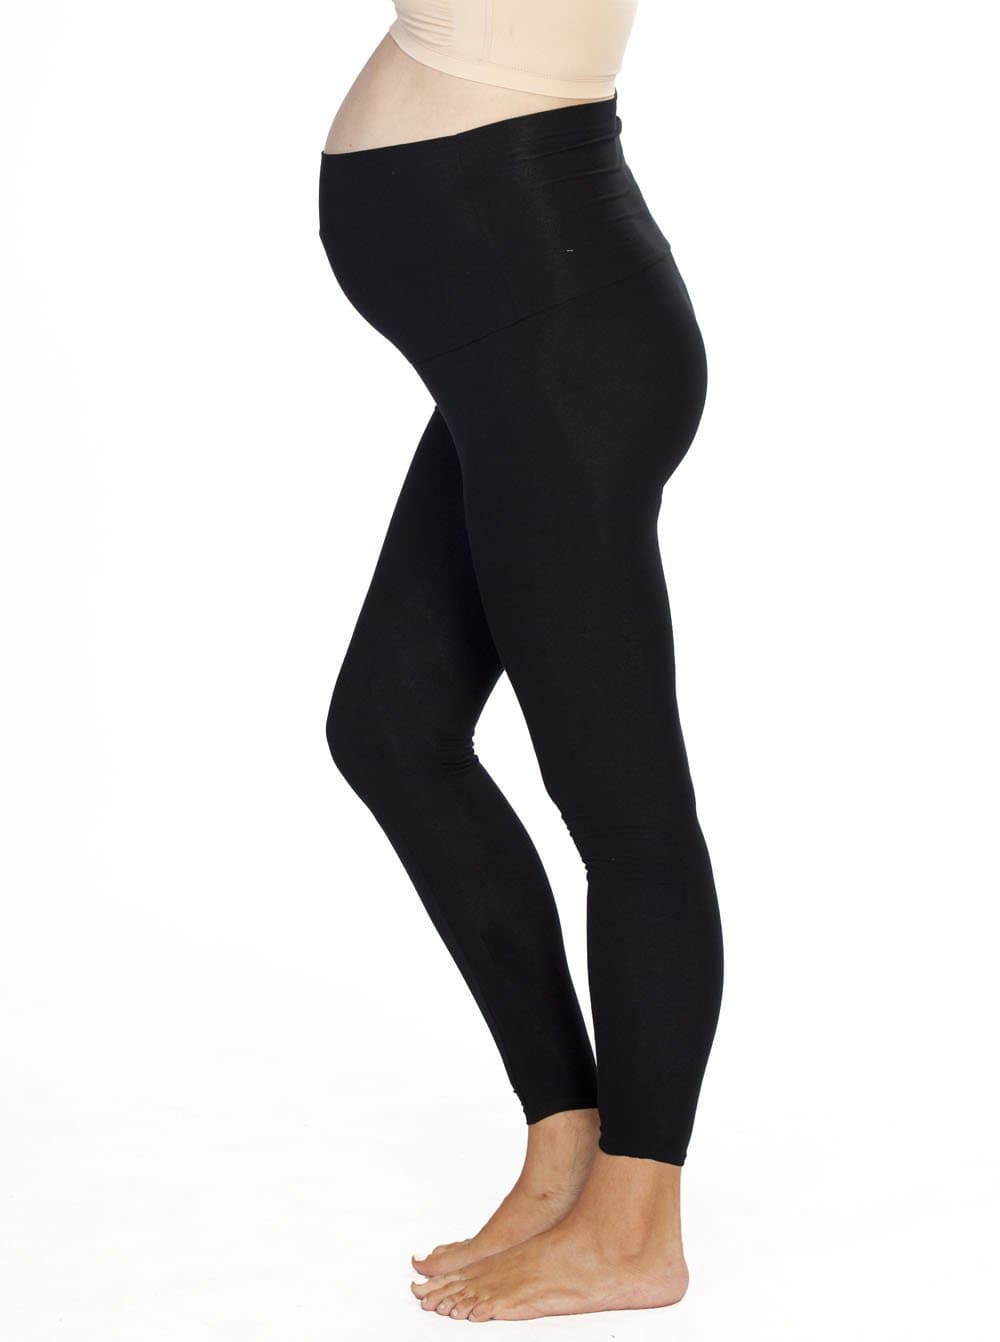 Maternity Foldable Waist Band Tight Legging - Black/Marl Grey - Best Seller - Angel Maternity - Maternity clothes - shop online